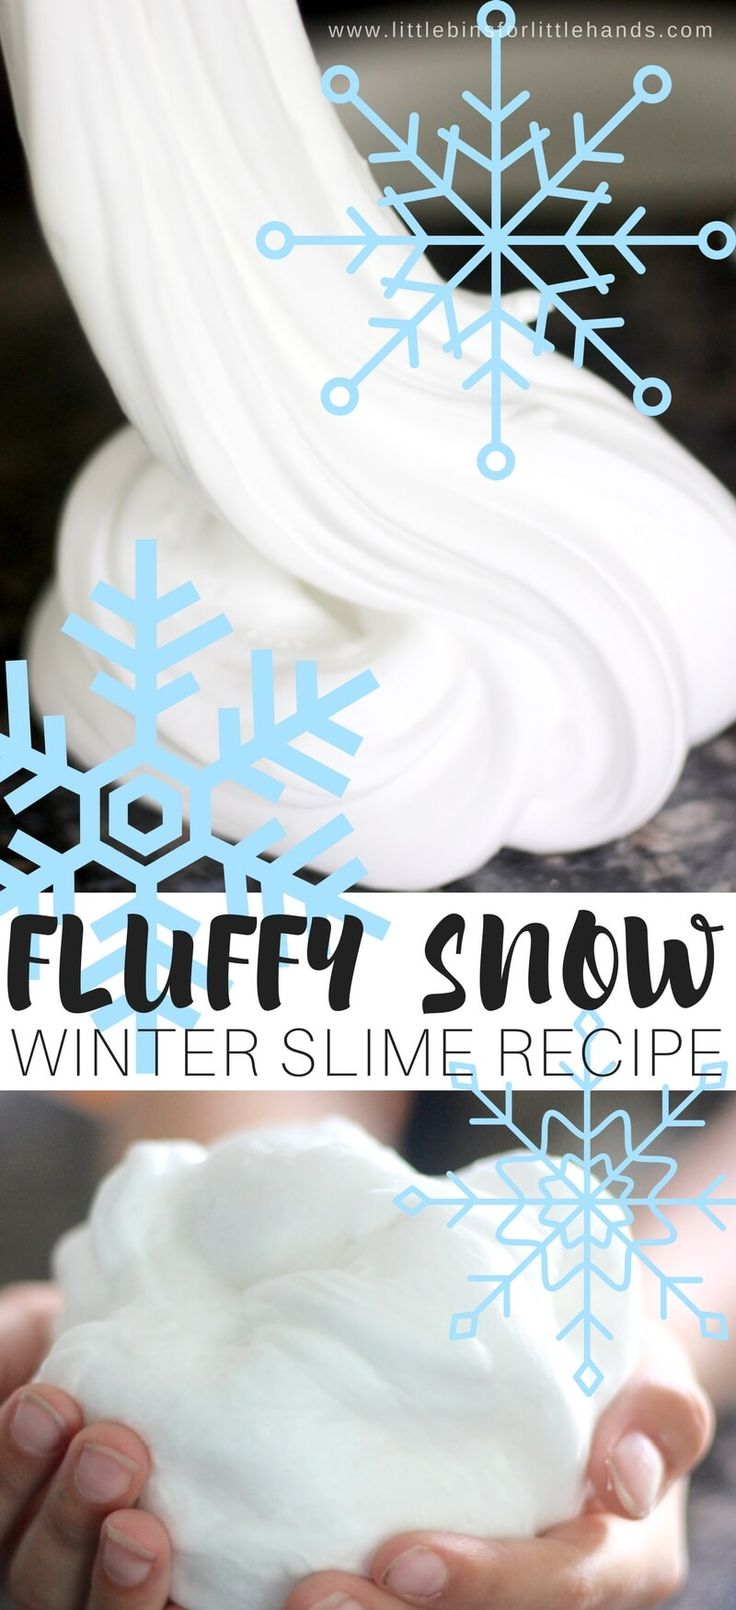 Even if the weather isn't calling for snow outdoors, we can make our own homemade fluffy snow slime recipe indoors! Plus this one isn't nearly as cold and you don't need mittens to handle it. Our fluffy slime recipe is by far the coolest slime recipe we love to make. I just had to make a snowball fluffy slime to go along with our melting snowman slime. It's a slime addiction.